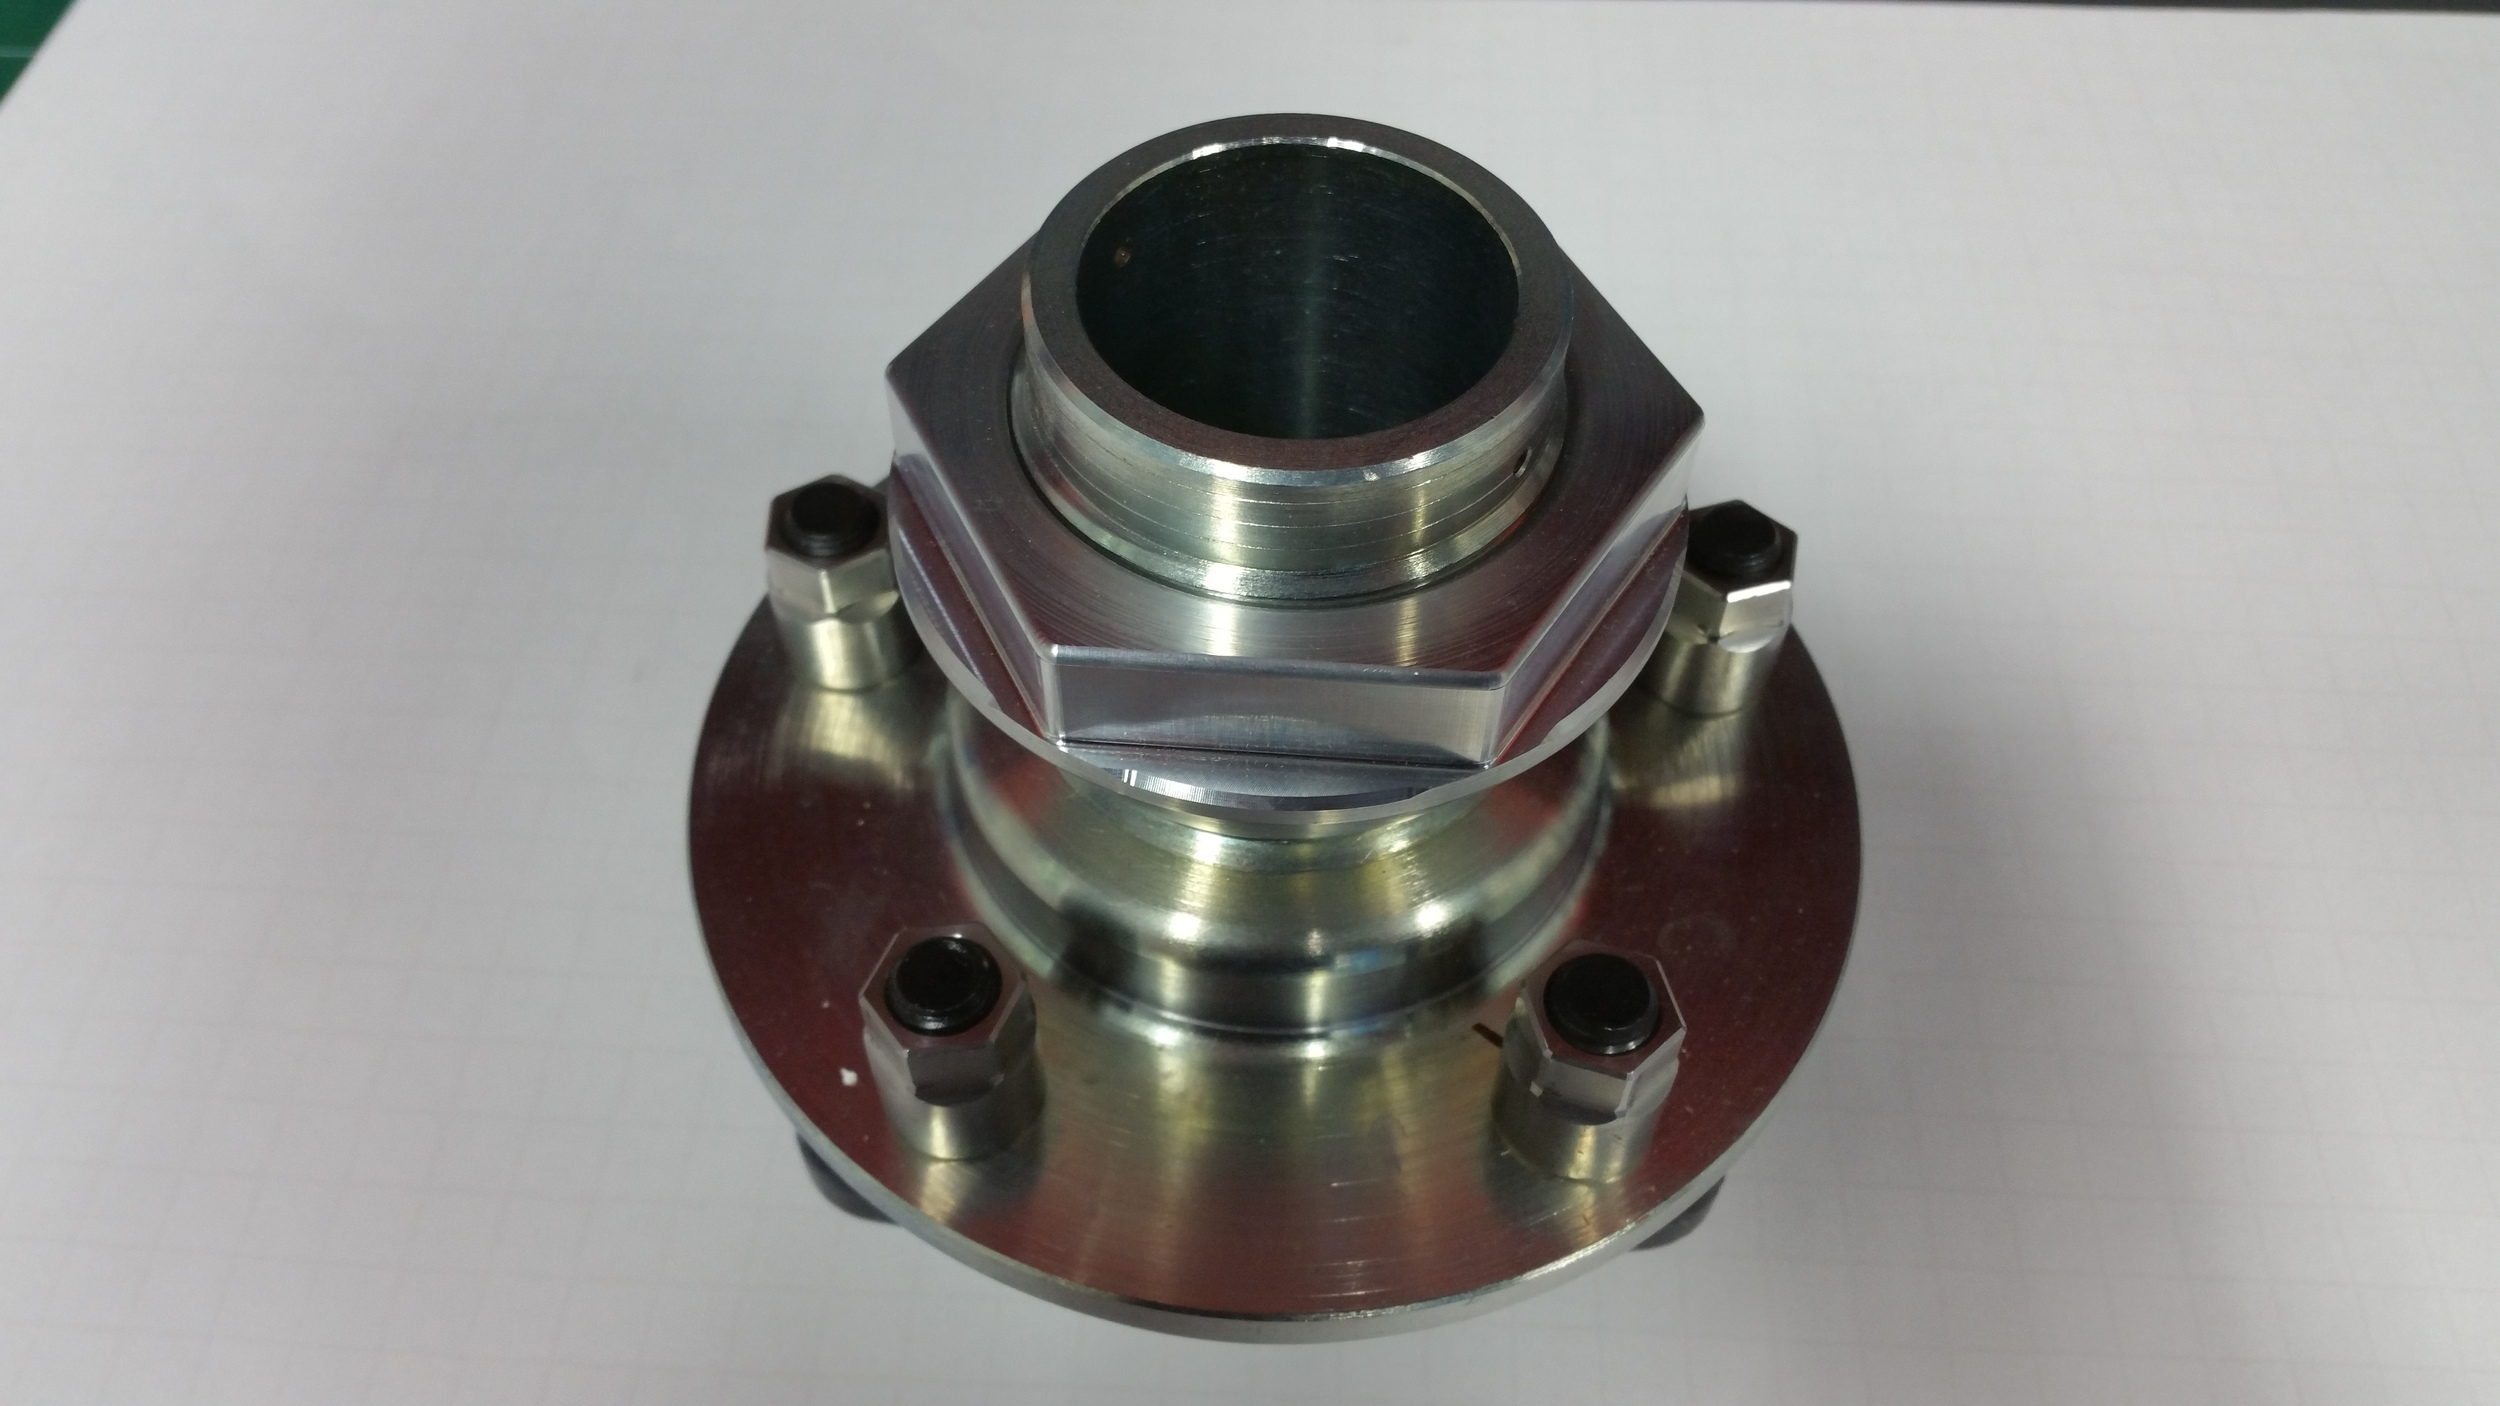 Centerlock wheel adapter from Superlite Cars mounted on a hub to show pins and nut detail